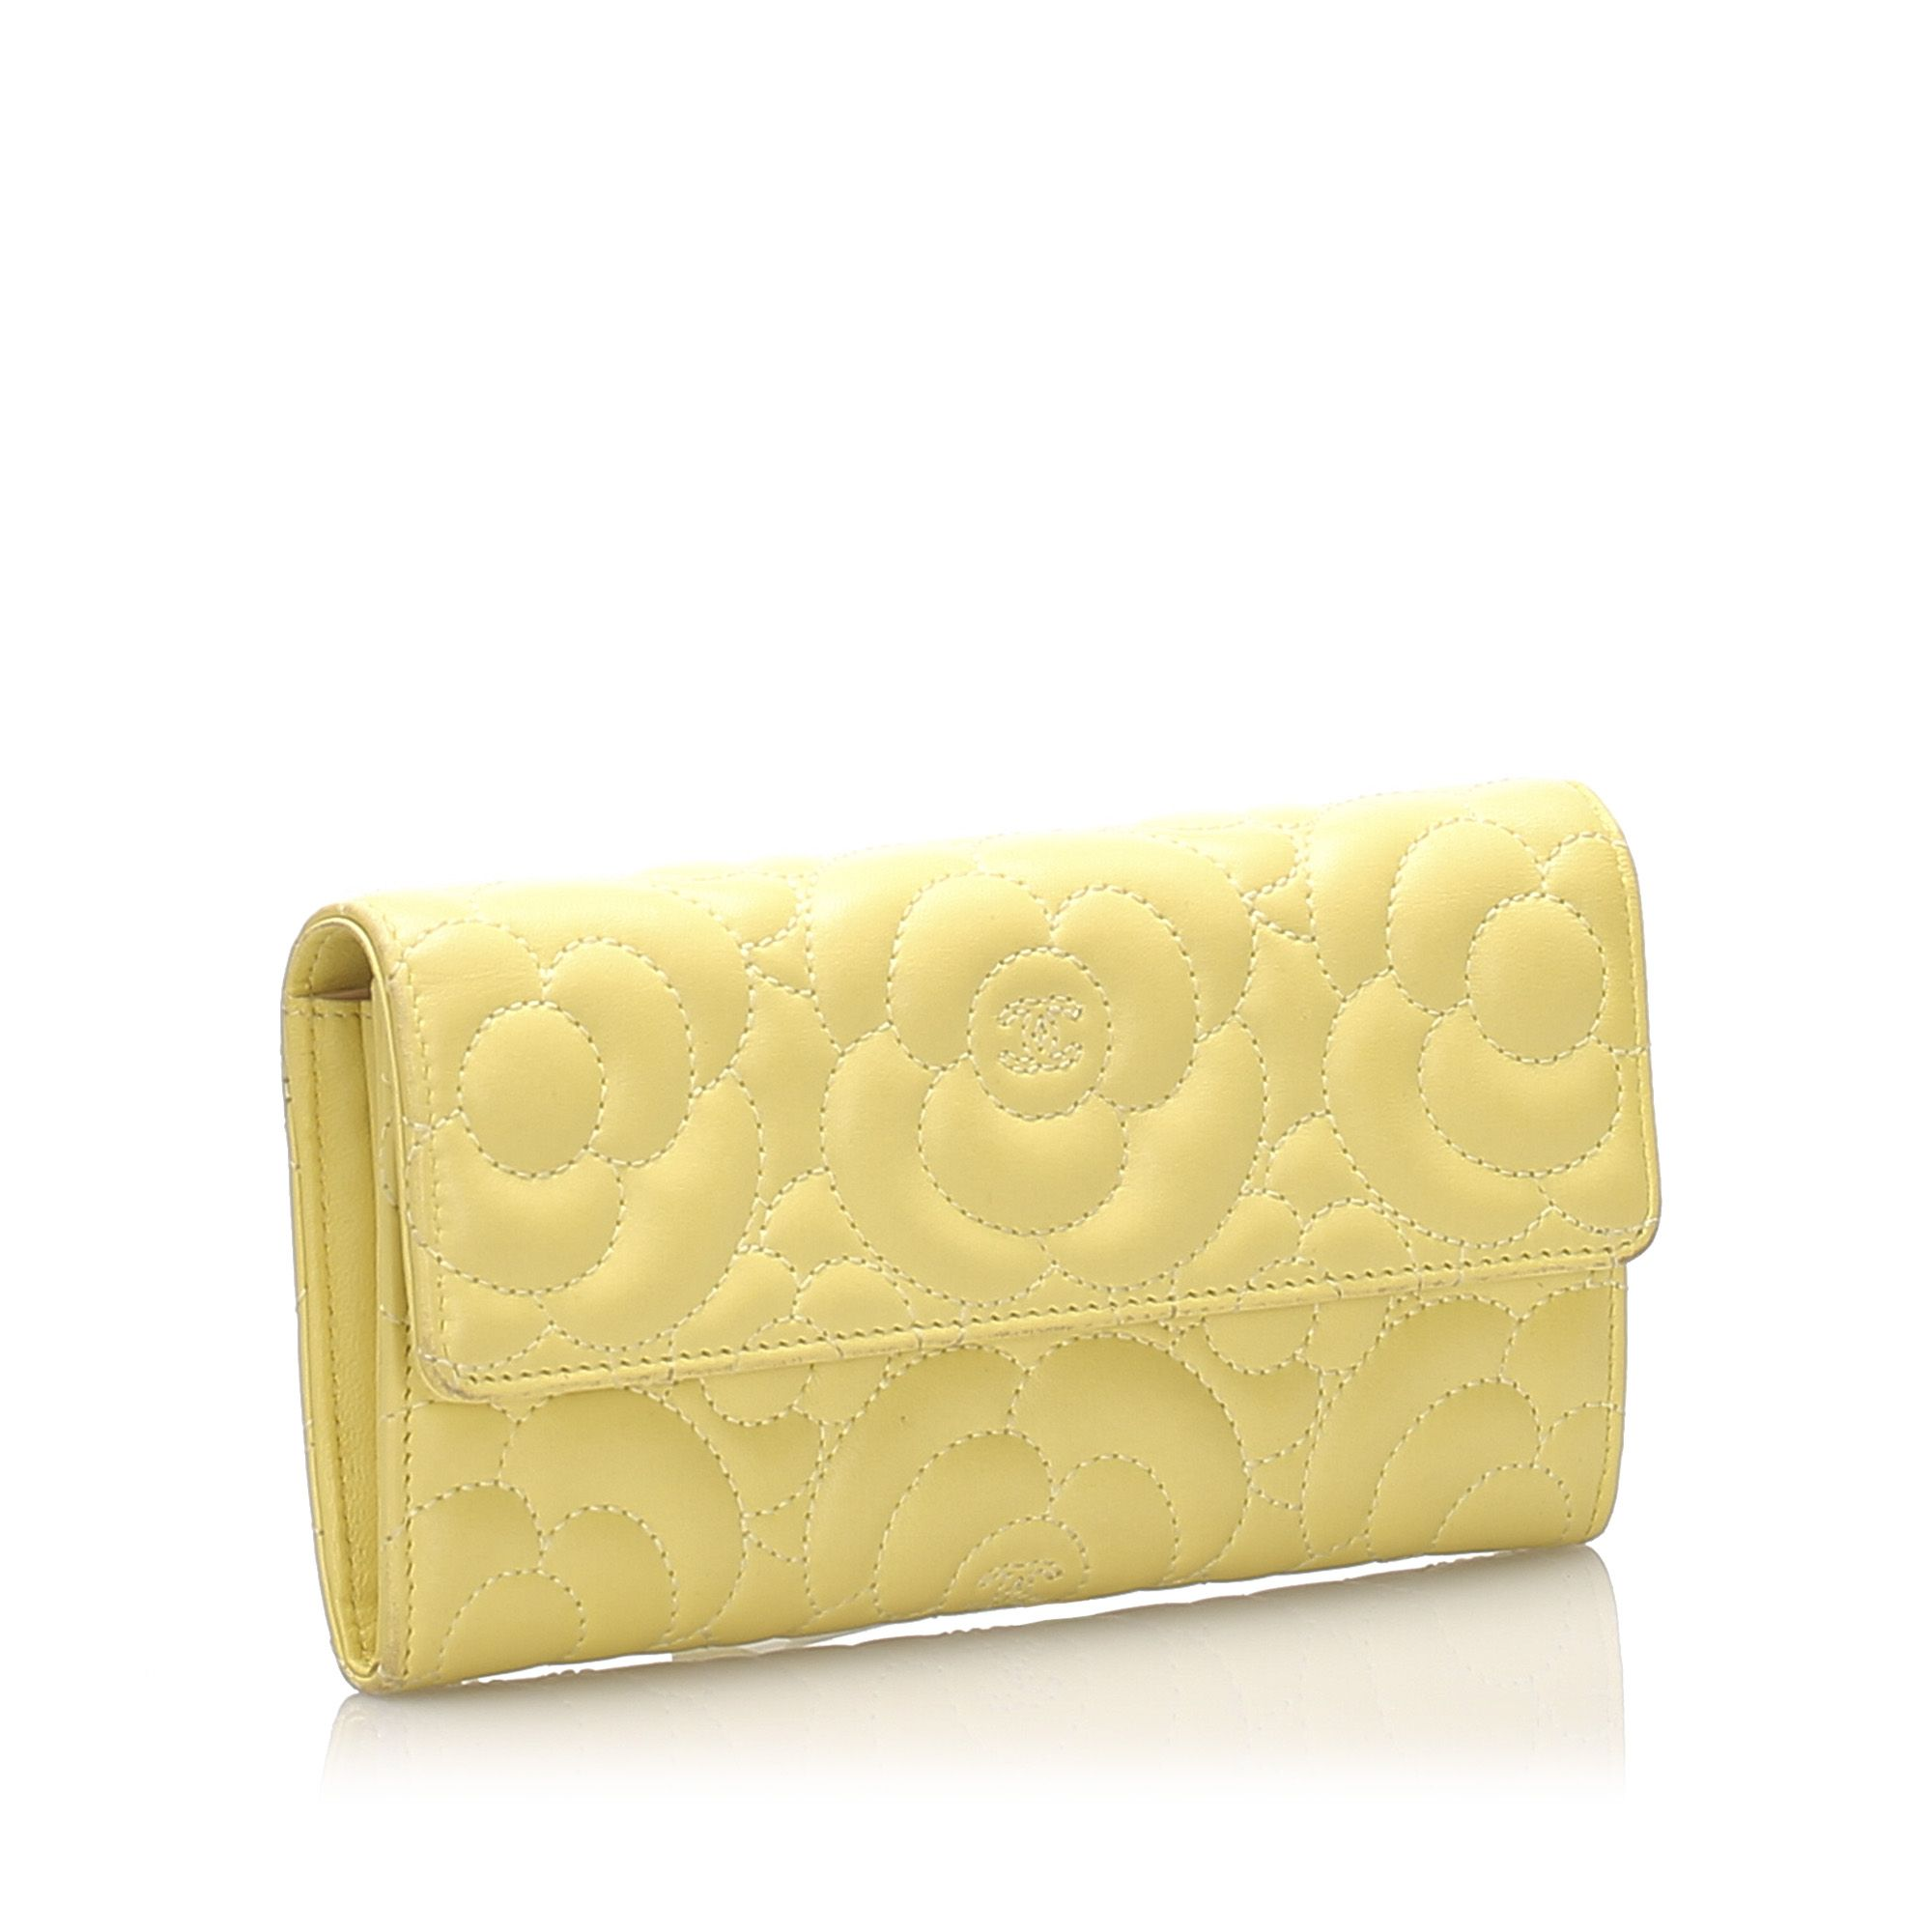 Vintage Chanel Camellia Lambskin Leather Flap Wallet Yellow